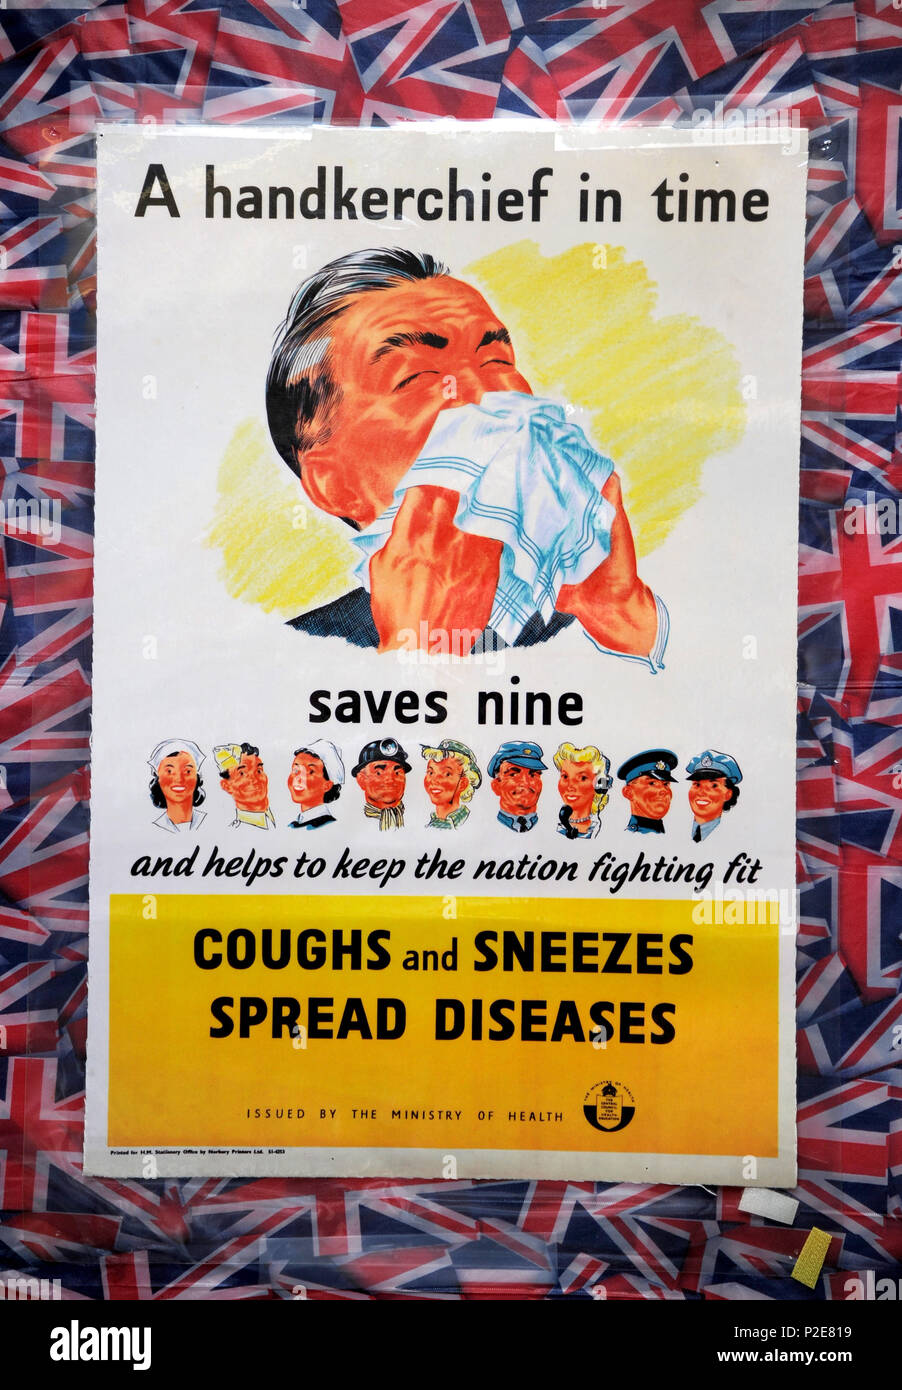 Wartime poster 'A handkerchief in Time saves Nine', Coughs and Sneezes Spread Diseases' - Stock Image